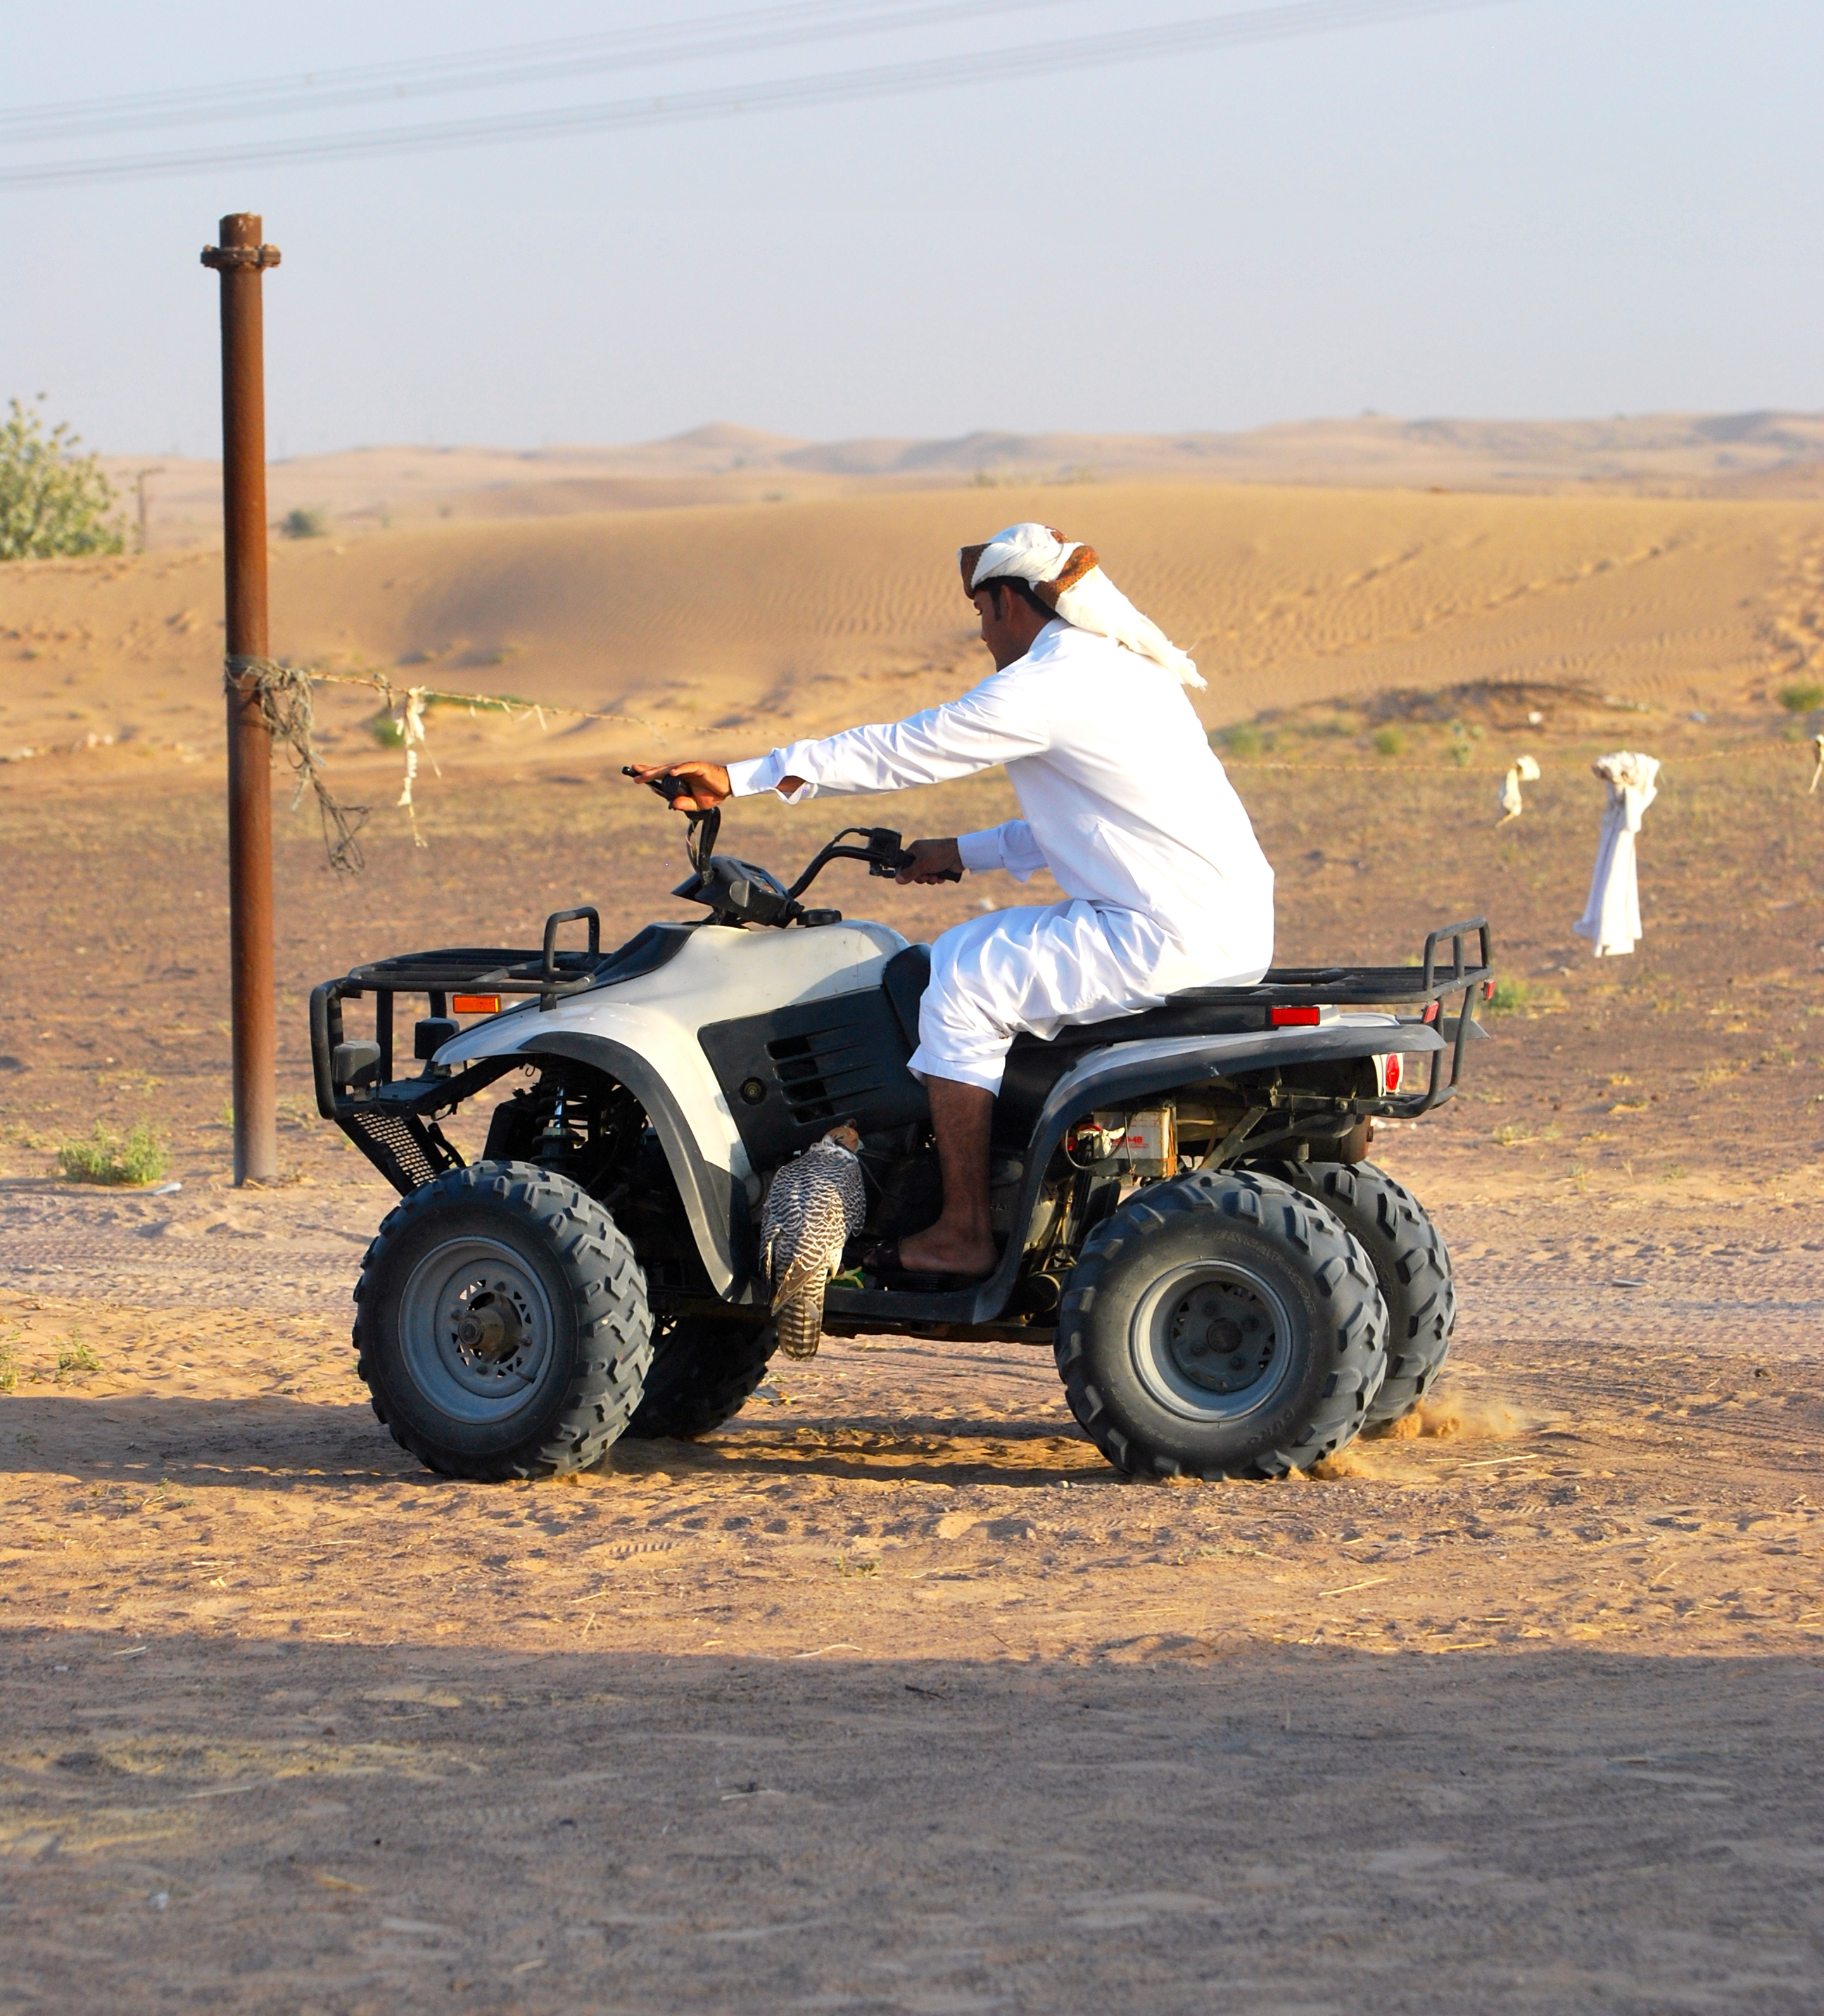 Man riding quad in desert with a falcon on the sideboard